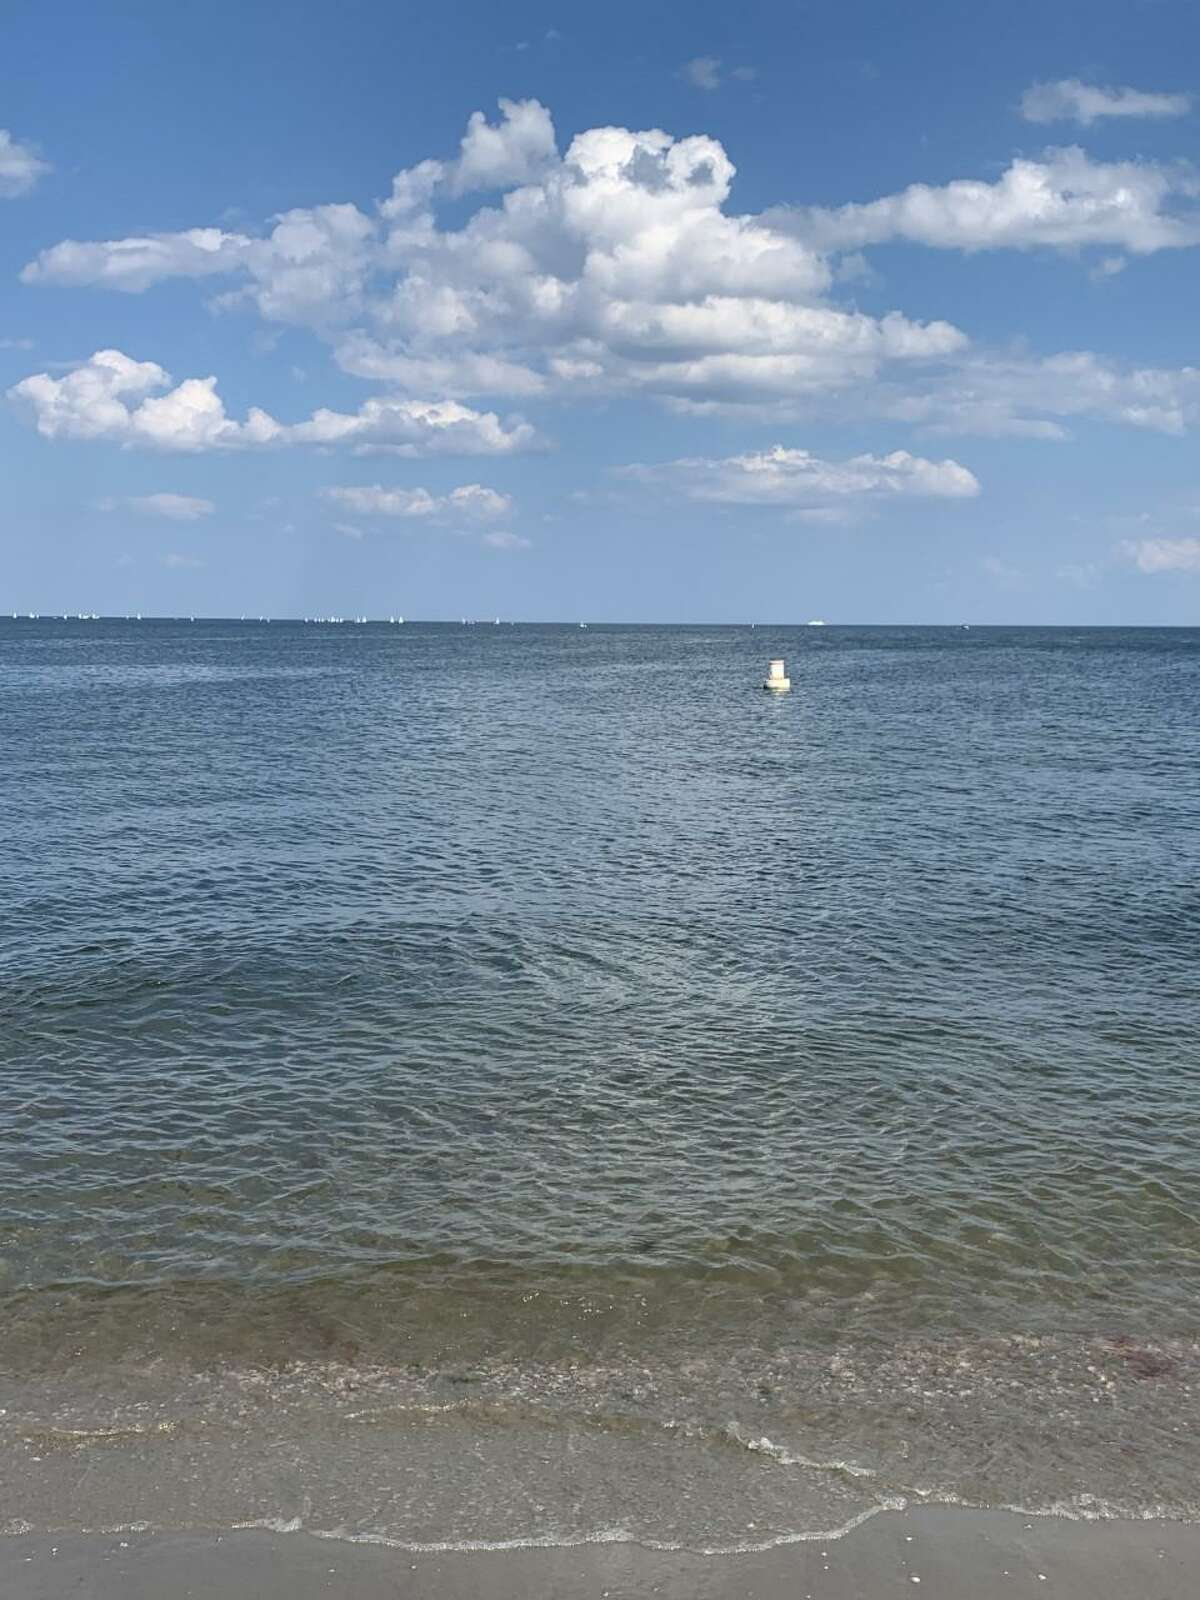 Matt Podolsky, who is of Fairfield, recently took this photo at the Penfield Beach in the town on Friday, July 30, at 4 p.m., with sunny skies, some light clouds, some wind, and 82 degree weather.